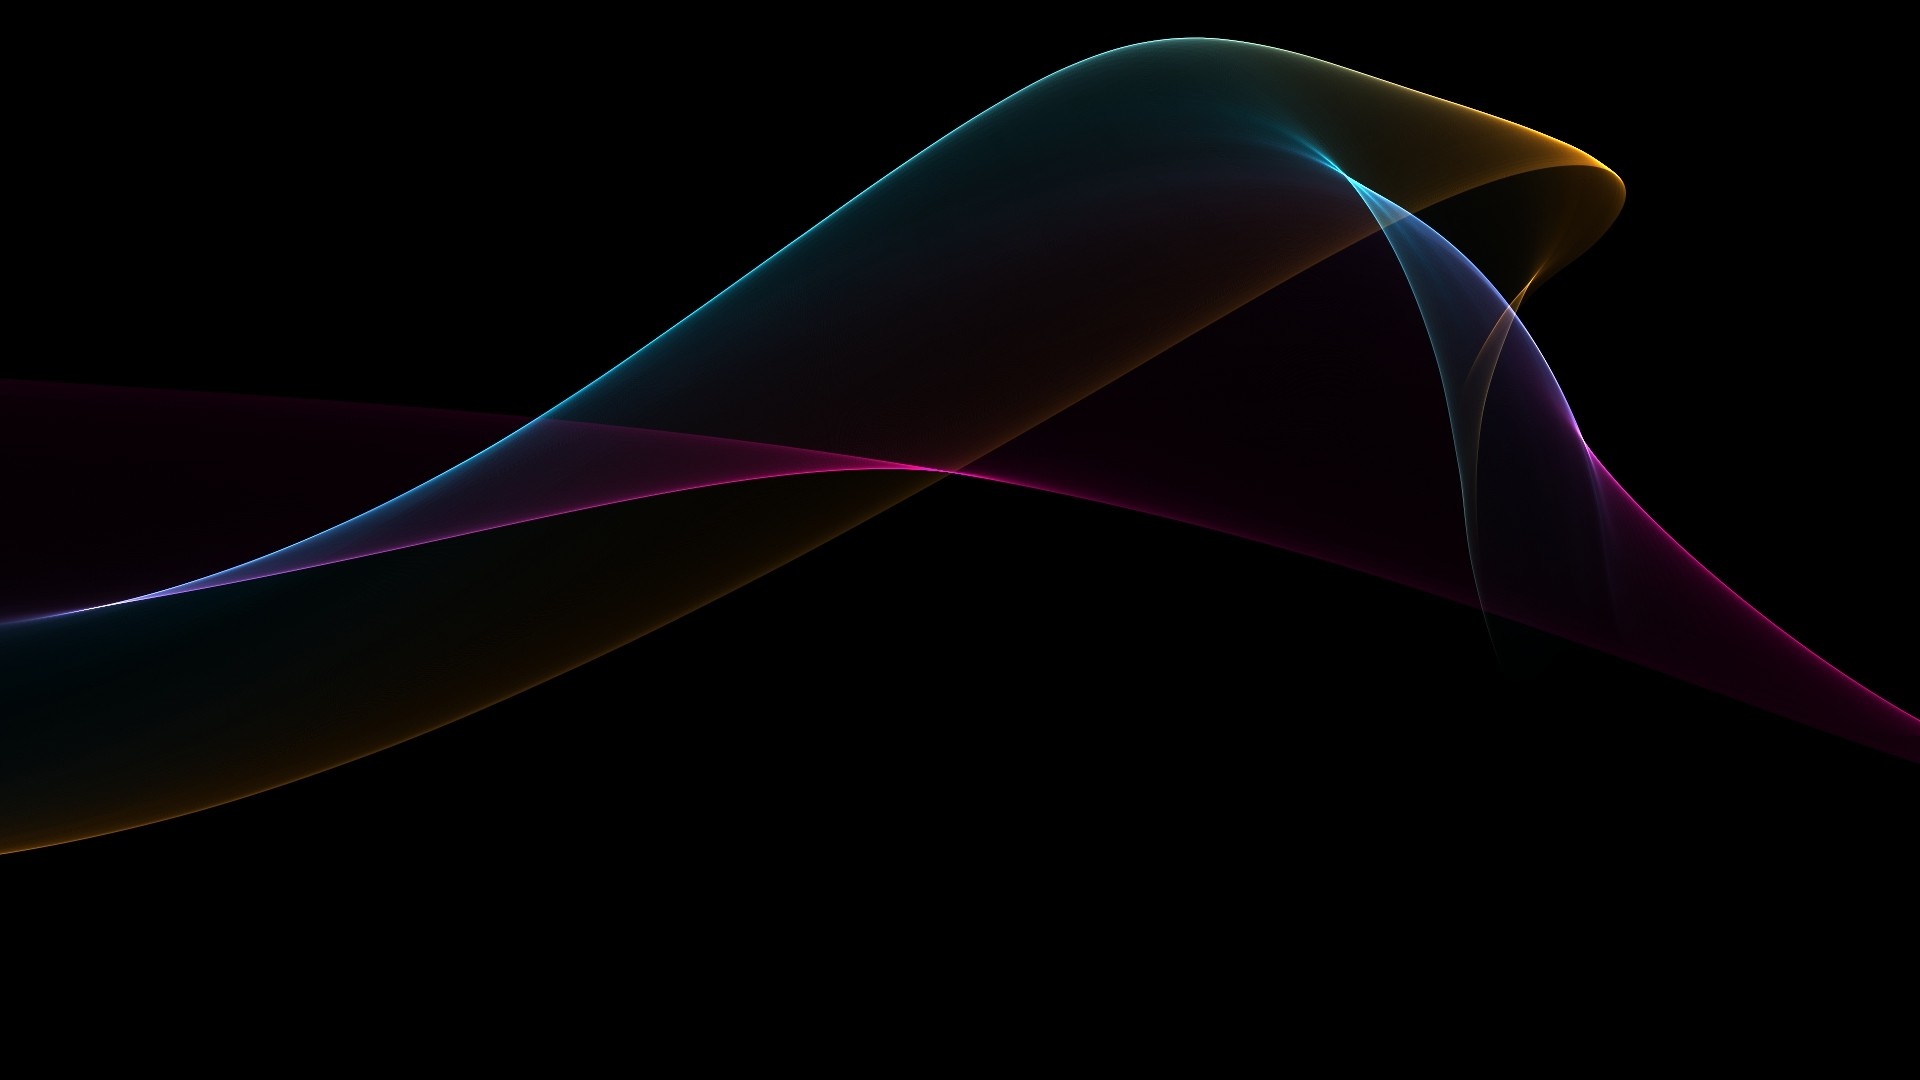 Pics Photos - Abstract Black Background Hd Wallpaper